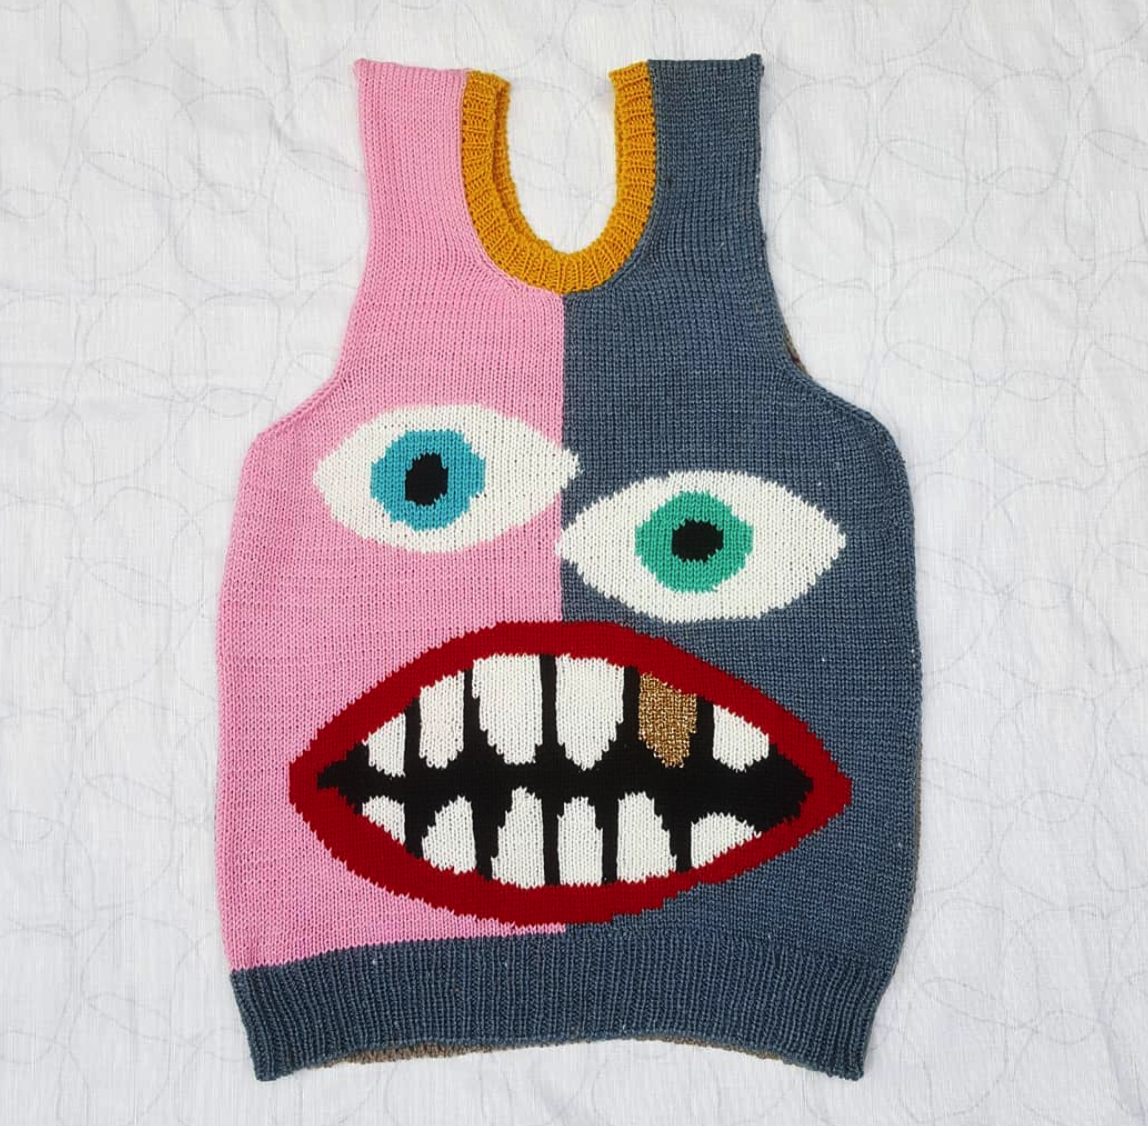 CHUNKY BOY KNITS GOLD TOOTH VEST - XL